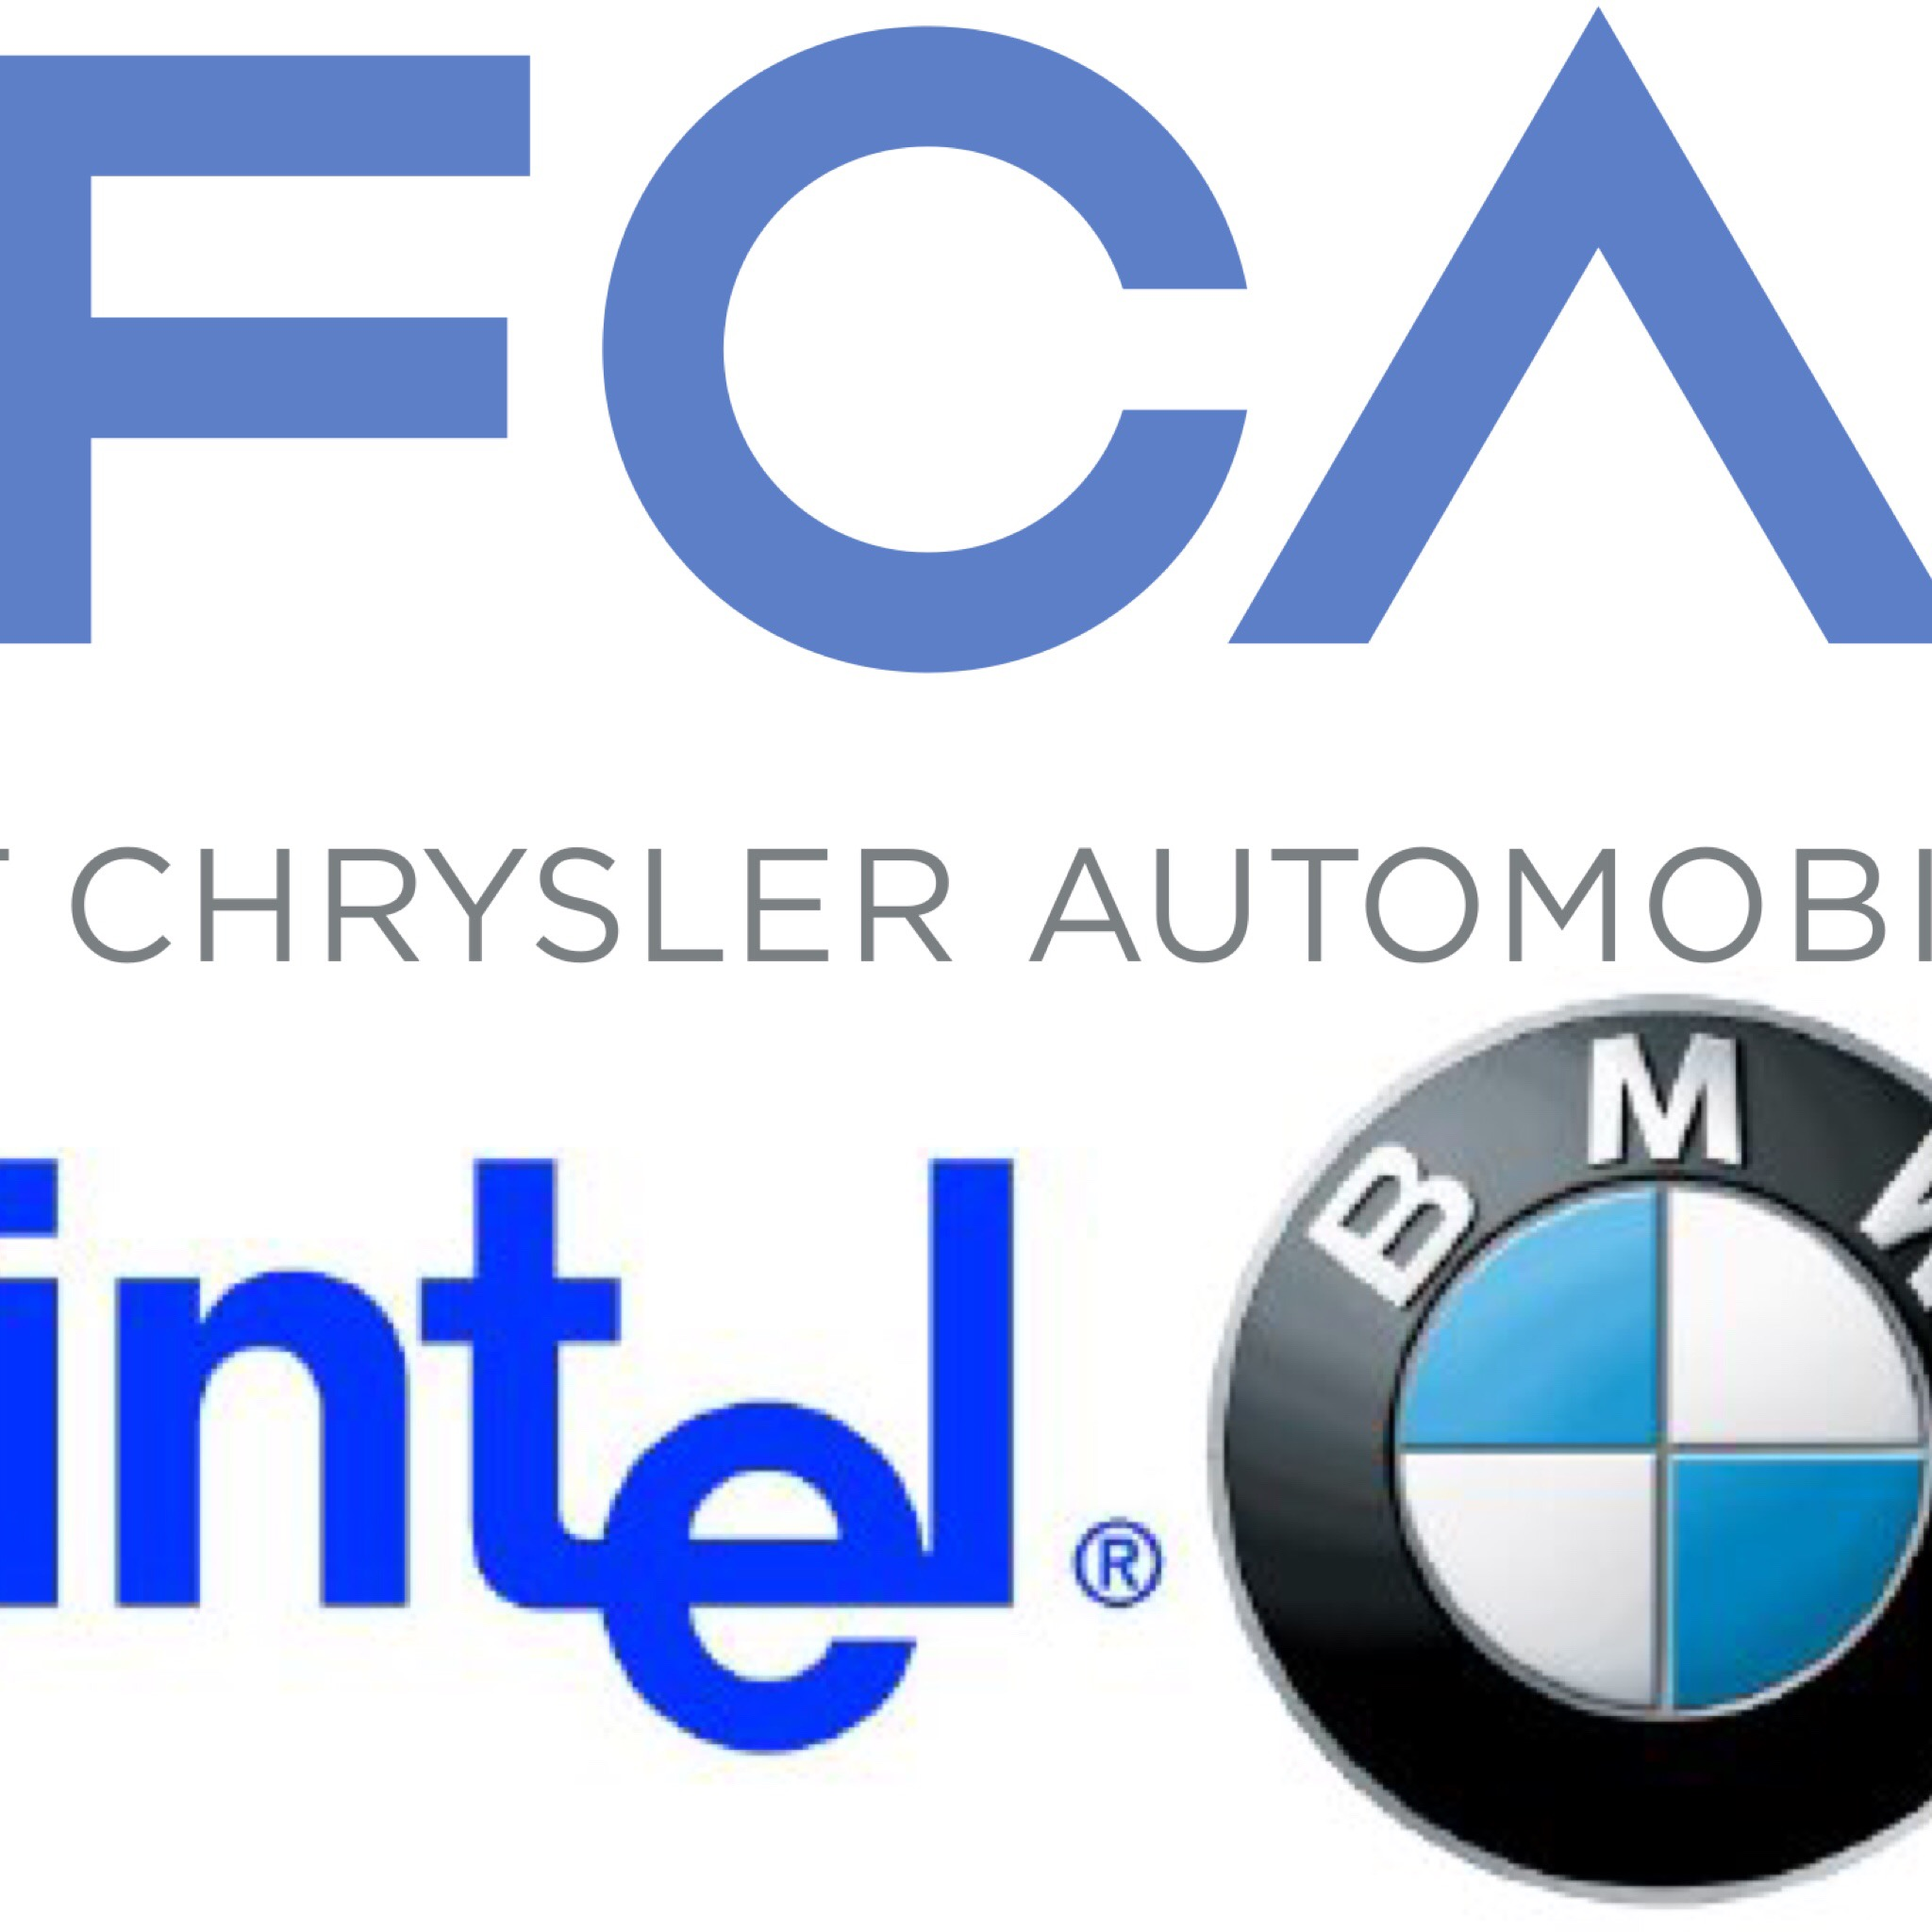 and fiat case evaluating on tichanun study in jumpee alliance chrysler by the auto